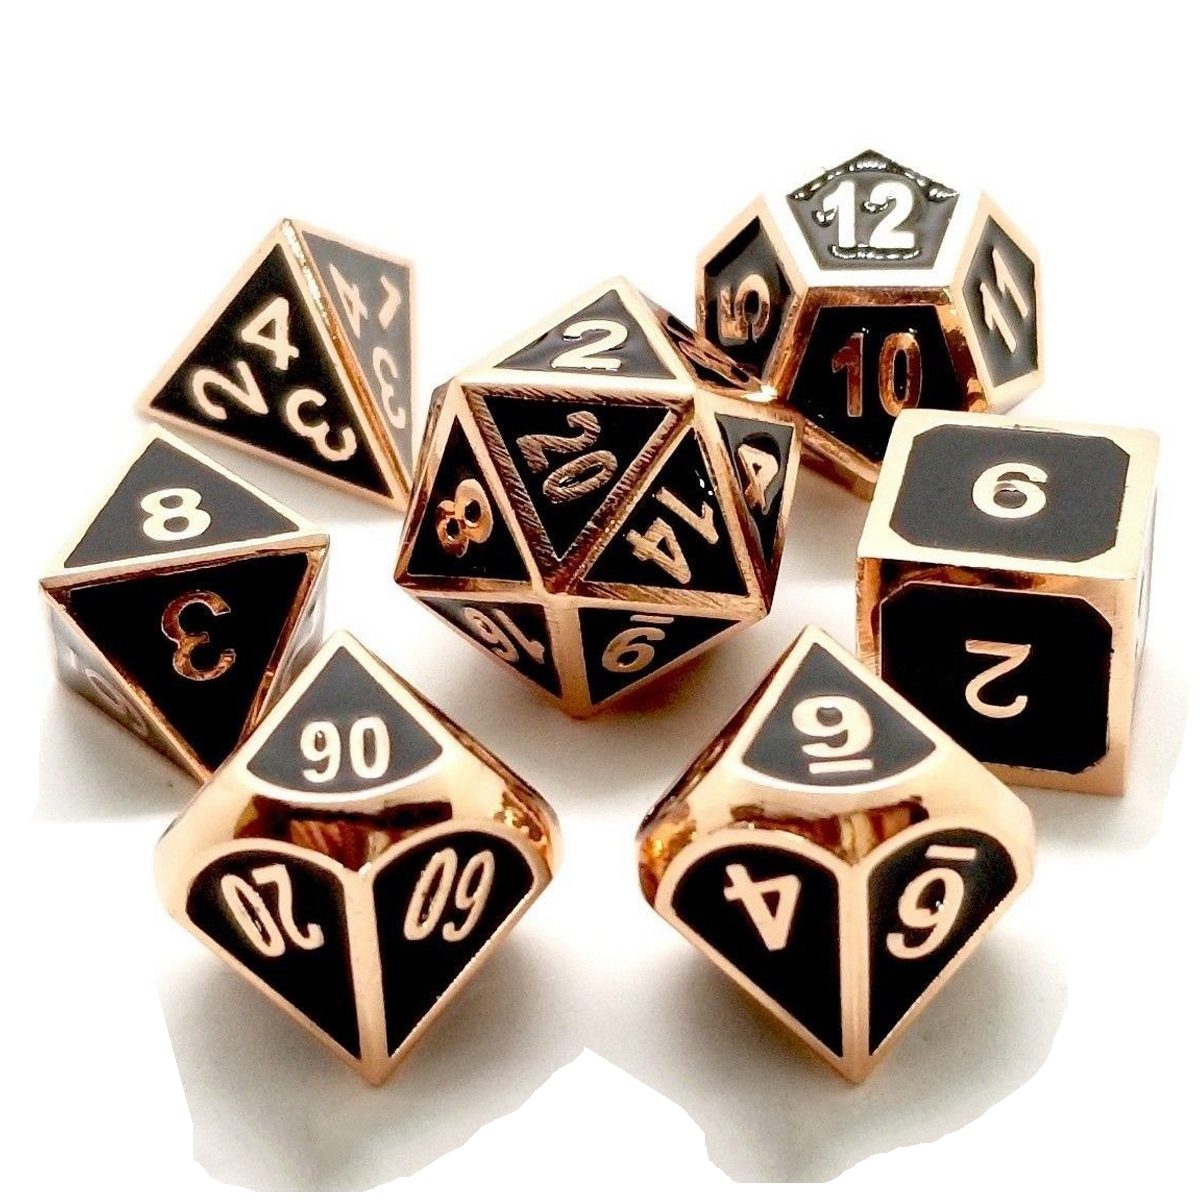 ECUBEE Solid Metal Polyhedral Dice Role Playing RPG 7 D